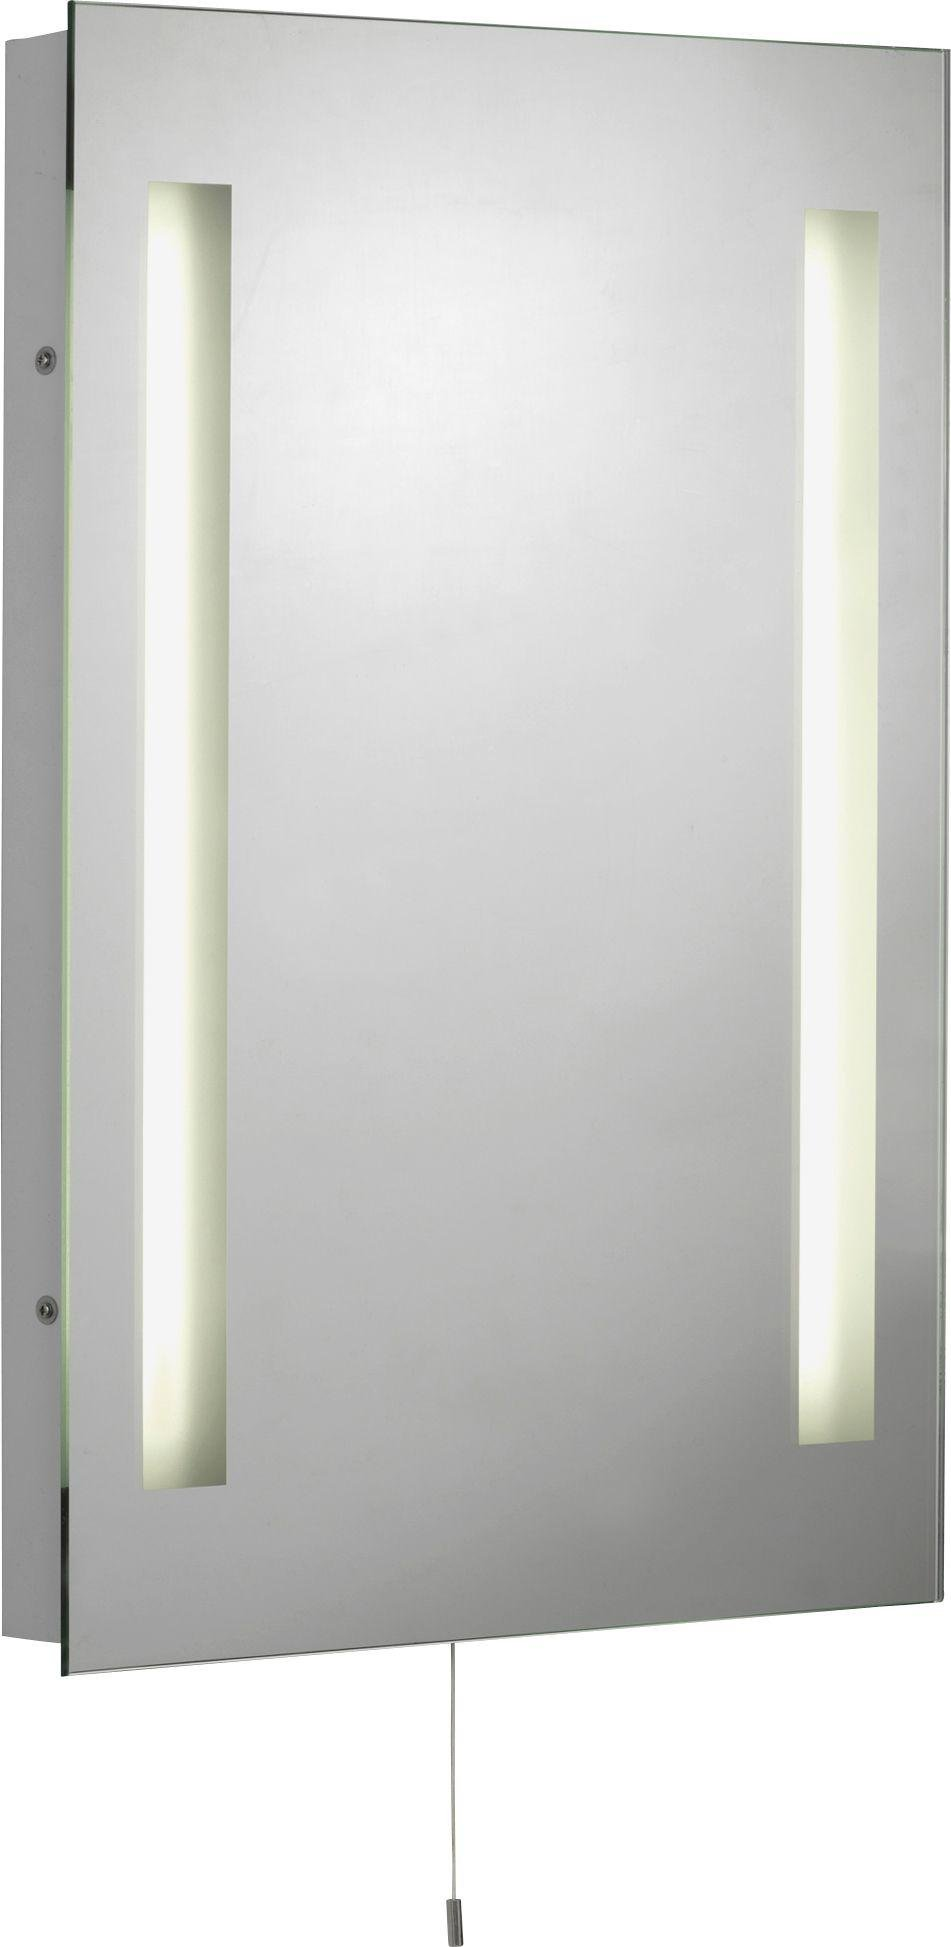 Bathroom Shaver Lights B&Q buy collection rectangular bathroom mirror with shaver point at